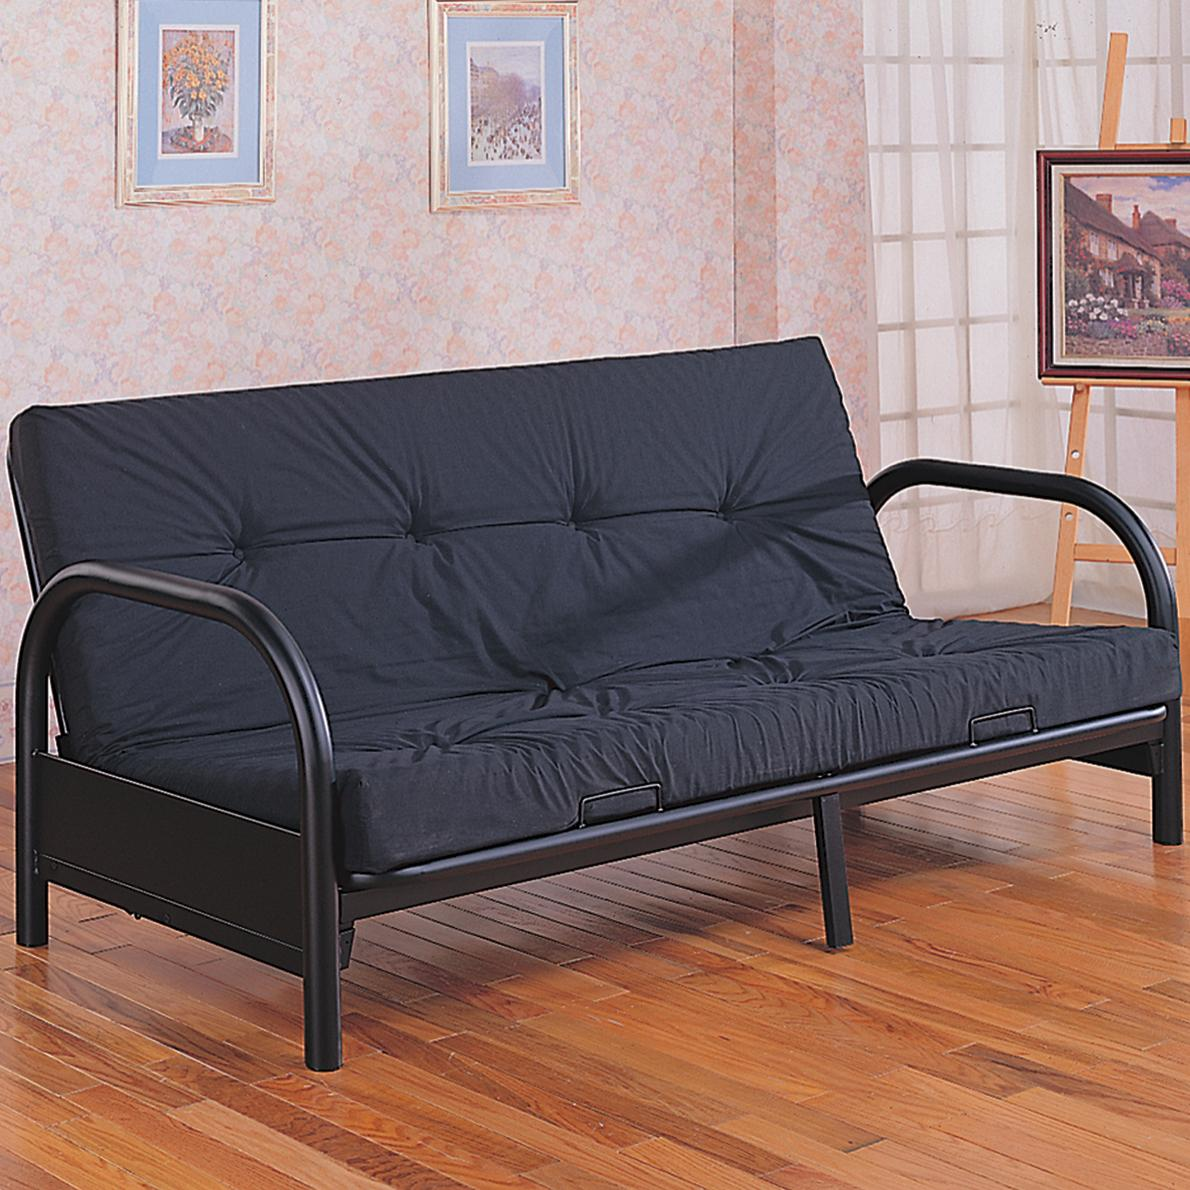 modern dc sleeper coaster futons futon stores sofa bed cofusobedslf furniture beds contemporary